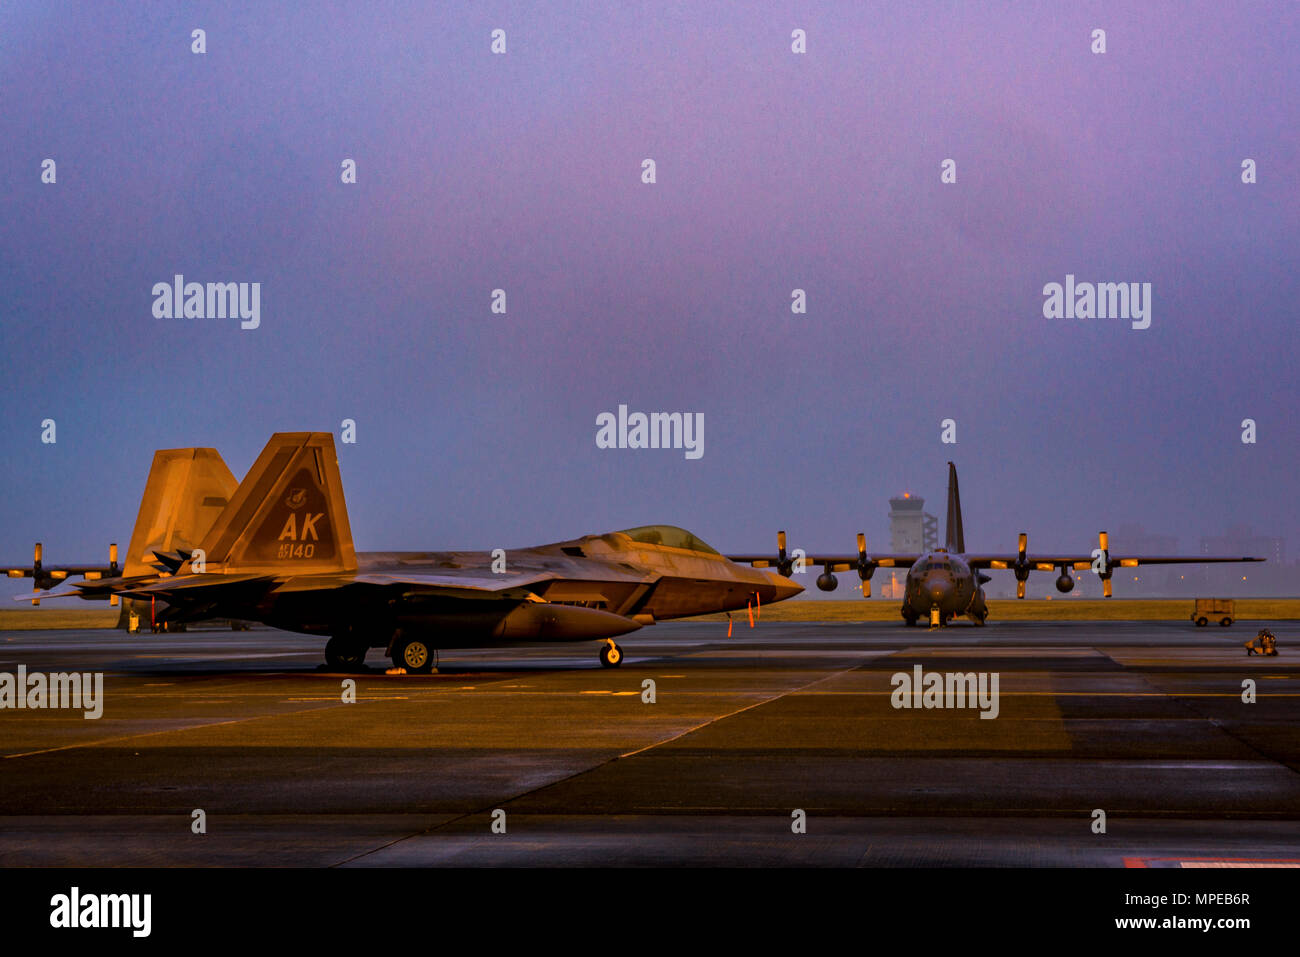 A U.S. Air Force F-22 Raptor from the 90th Fighter Squadron at Joint Base Elmendorf-Richardson, sits on the flight line at Yokota Air Base, Japan, Feb. 10, 2017. The F-22 Raptors stopped at Yokota AB before traveling on to Royal Australian Air Force Base, Tindal. As the Air Force's Western Pacific airlift hub, Yokota supports transient aircraft as they conduct missions throughout the Indo-Asia Pacific Region. (U.S. Air Force photo by Airman 1st Class Donald Hudson) - Stock Image